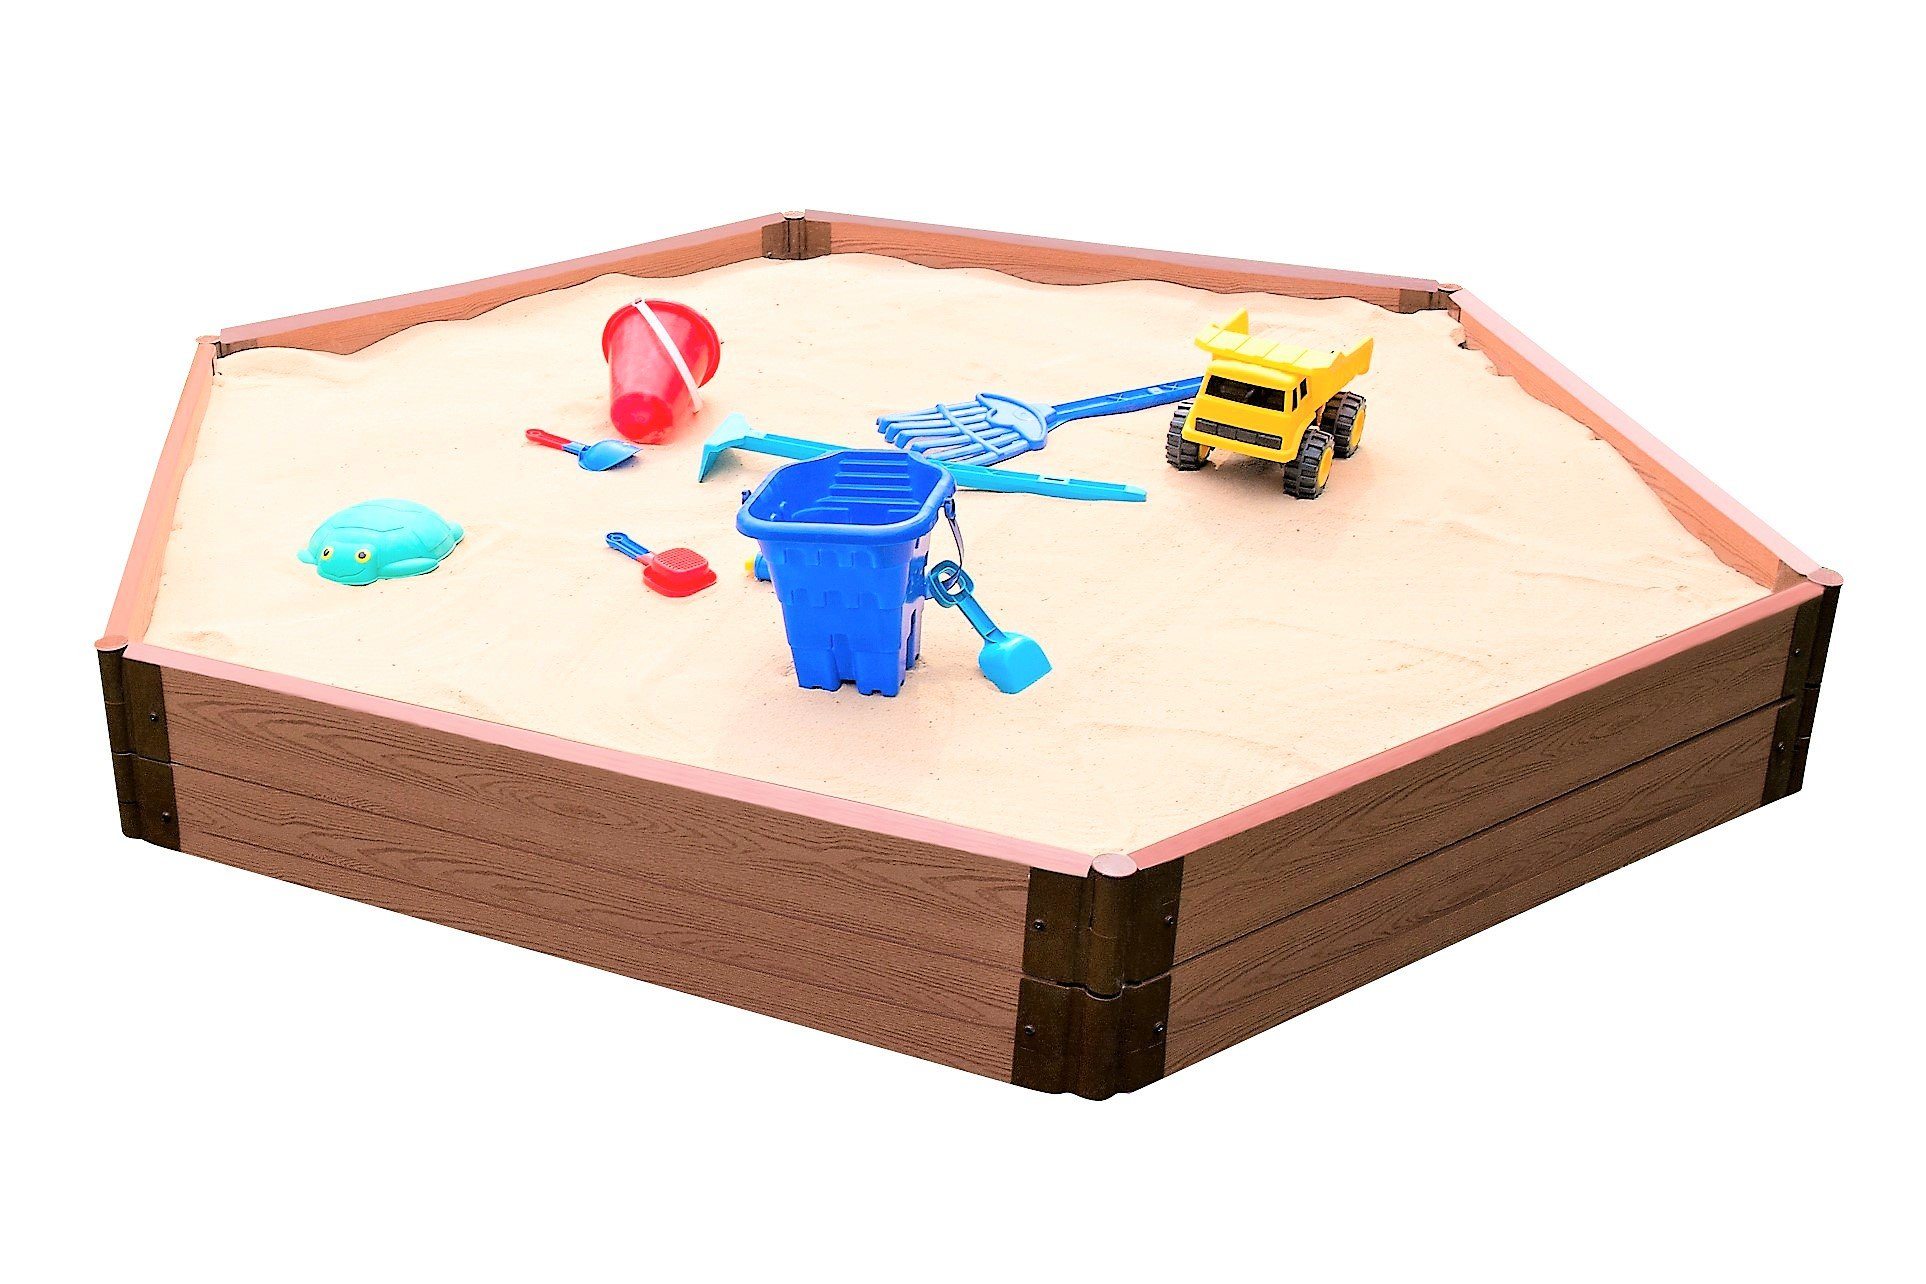 Frame It All 300001511 Two inch Series Composite Hexagon Sandbox Kit with Collapsible Cover, 7' x 8' x 11